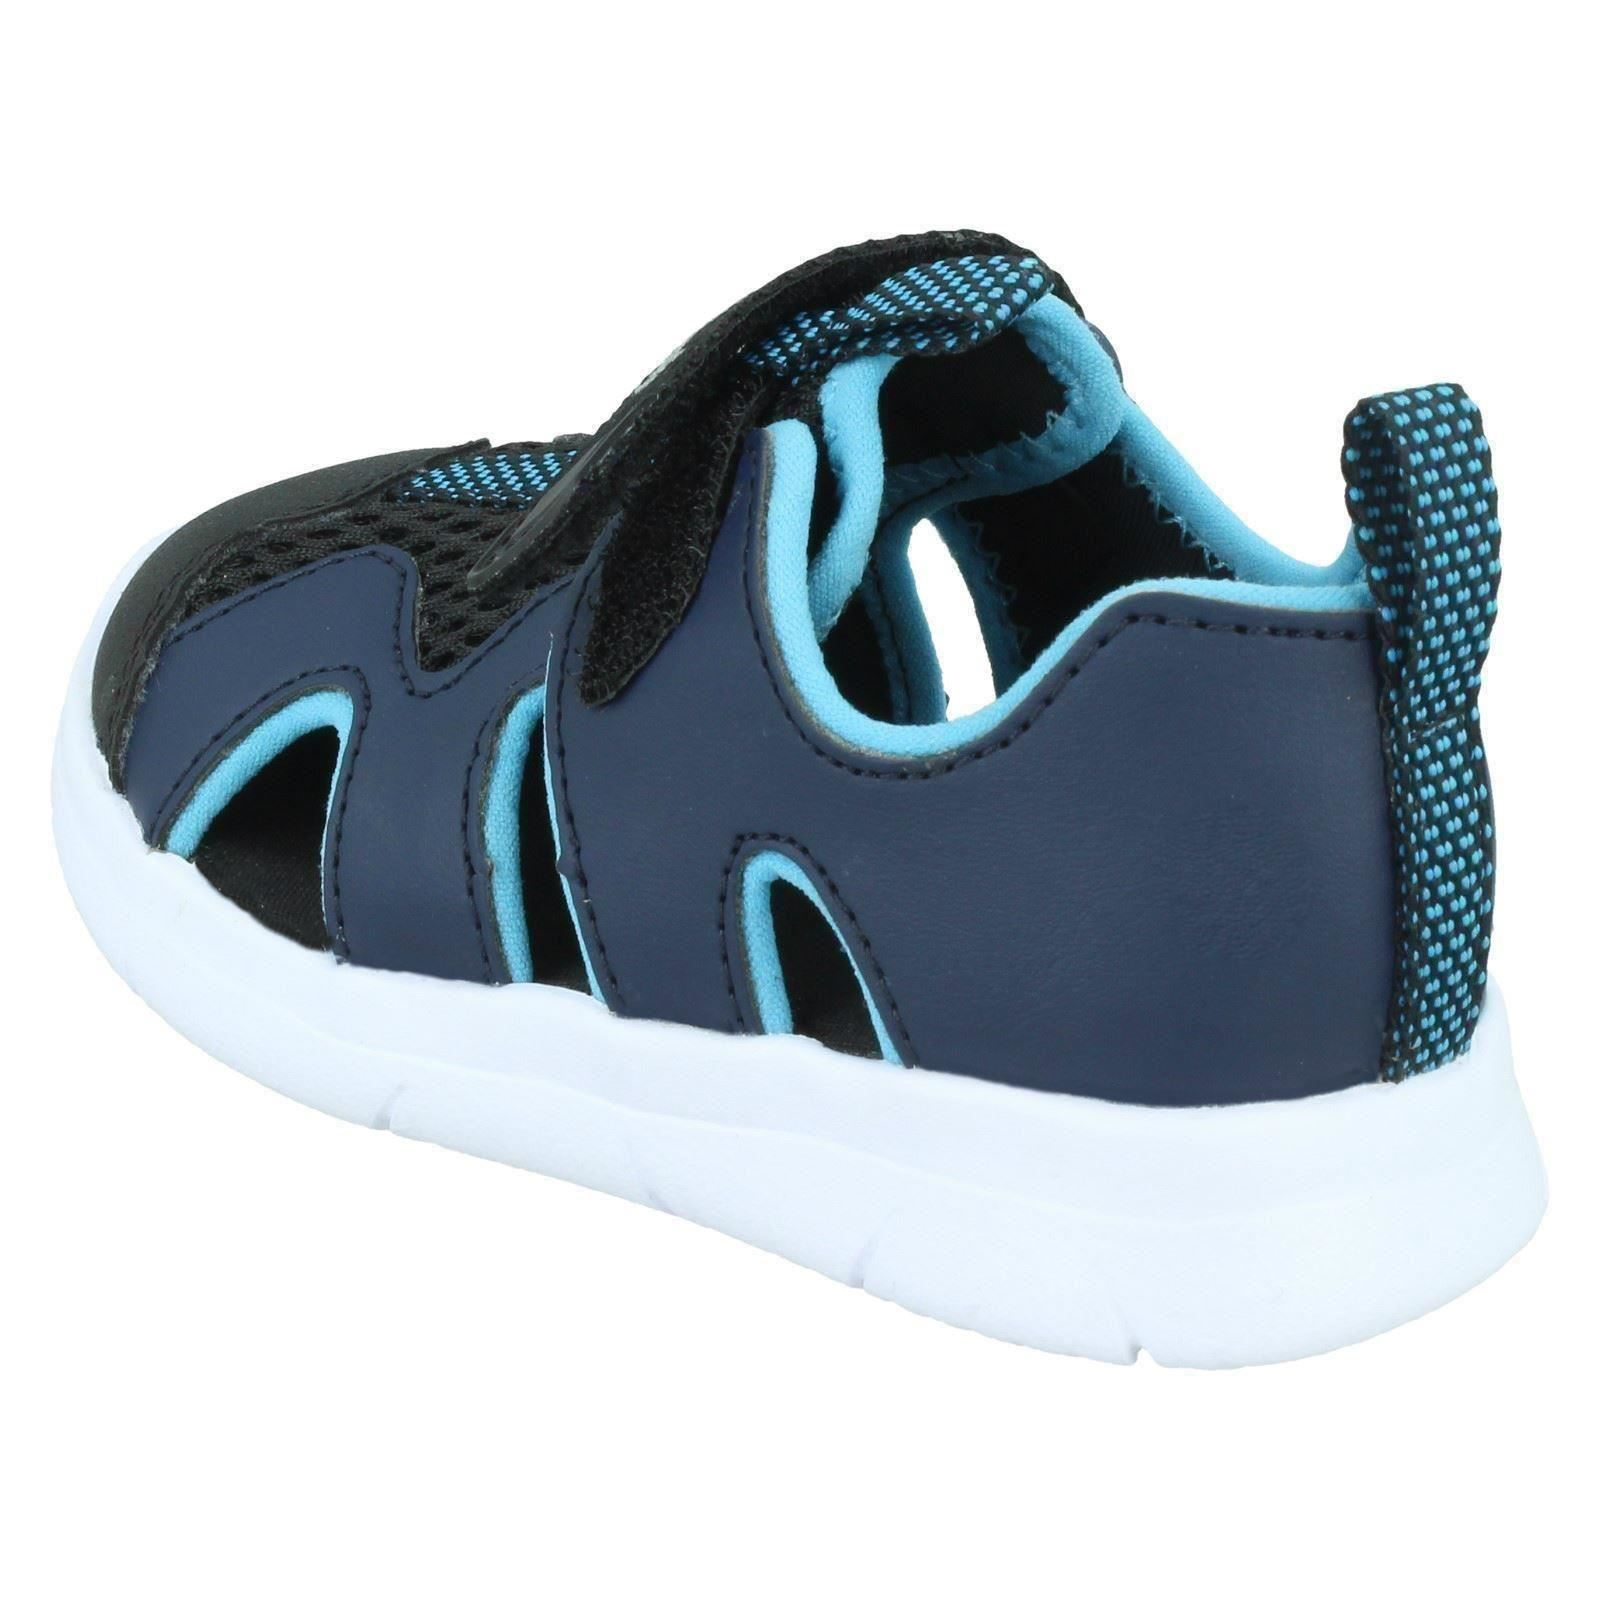 Childrens Clarks Ath Surf T Casual Summer Sandals